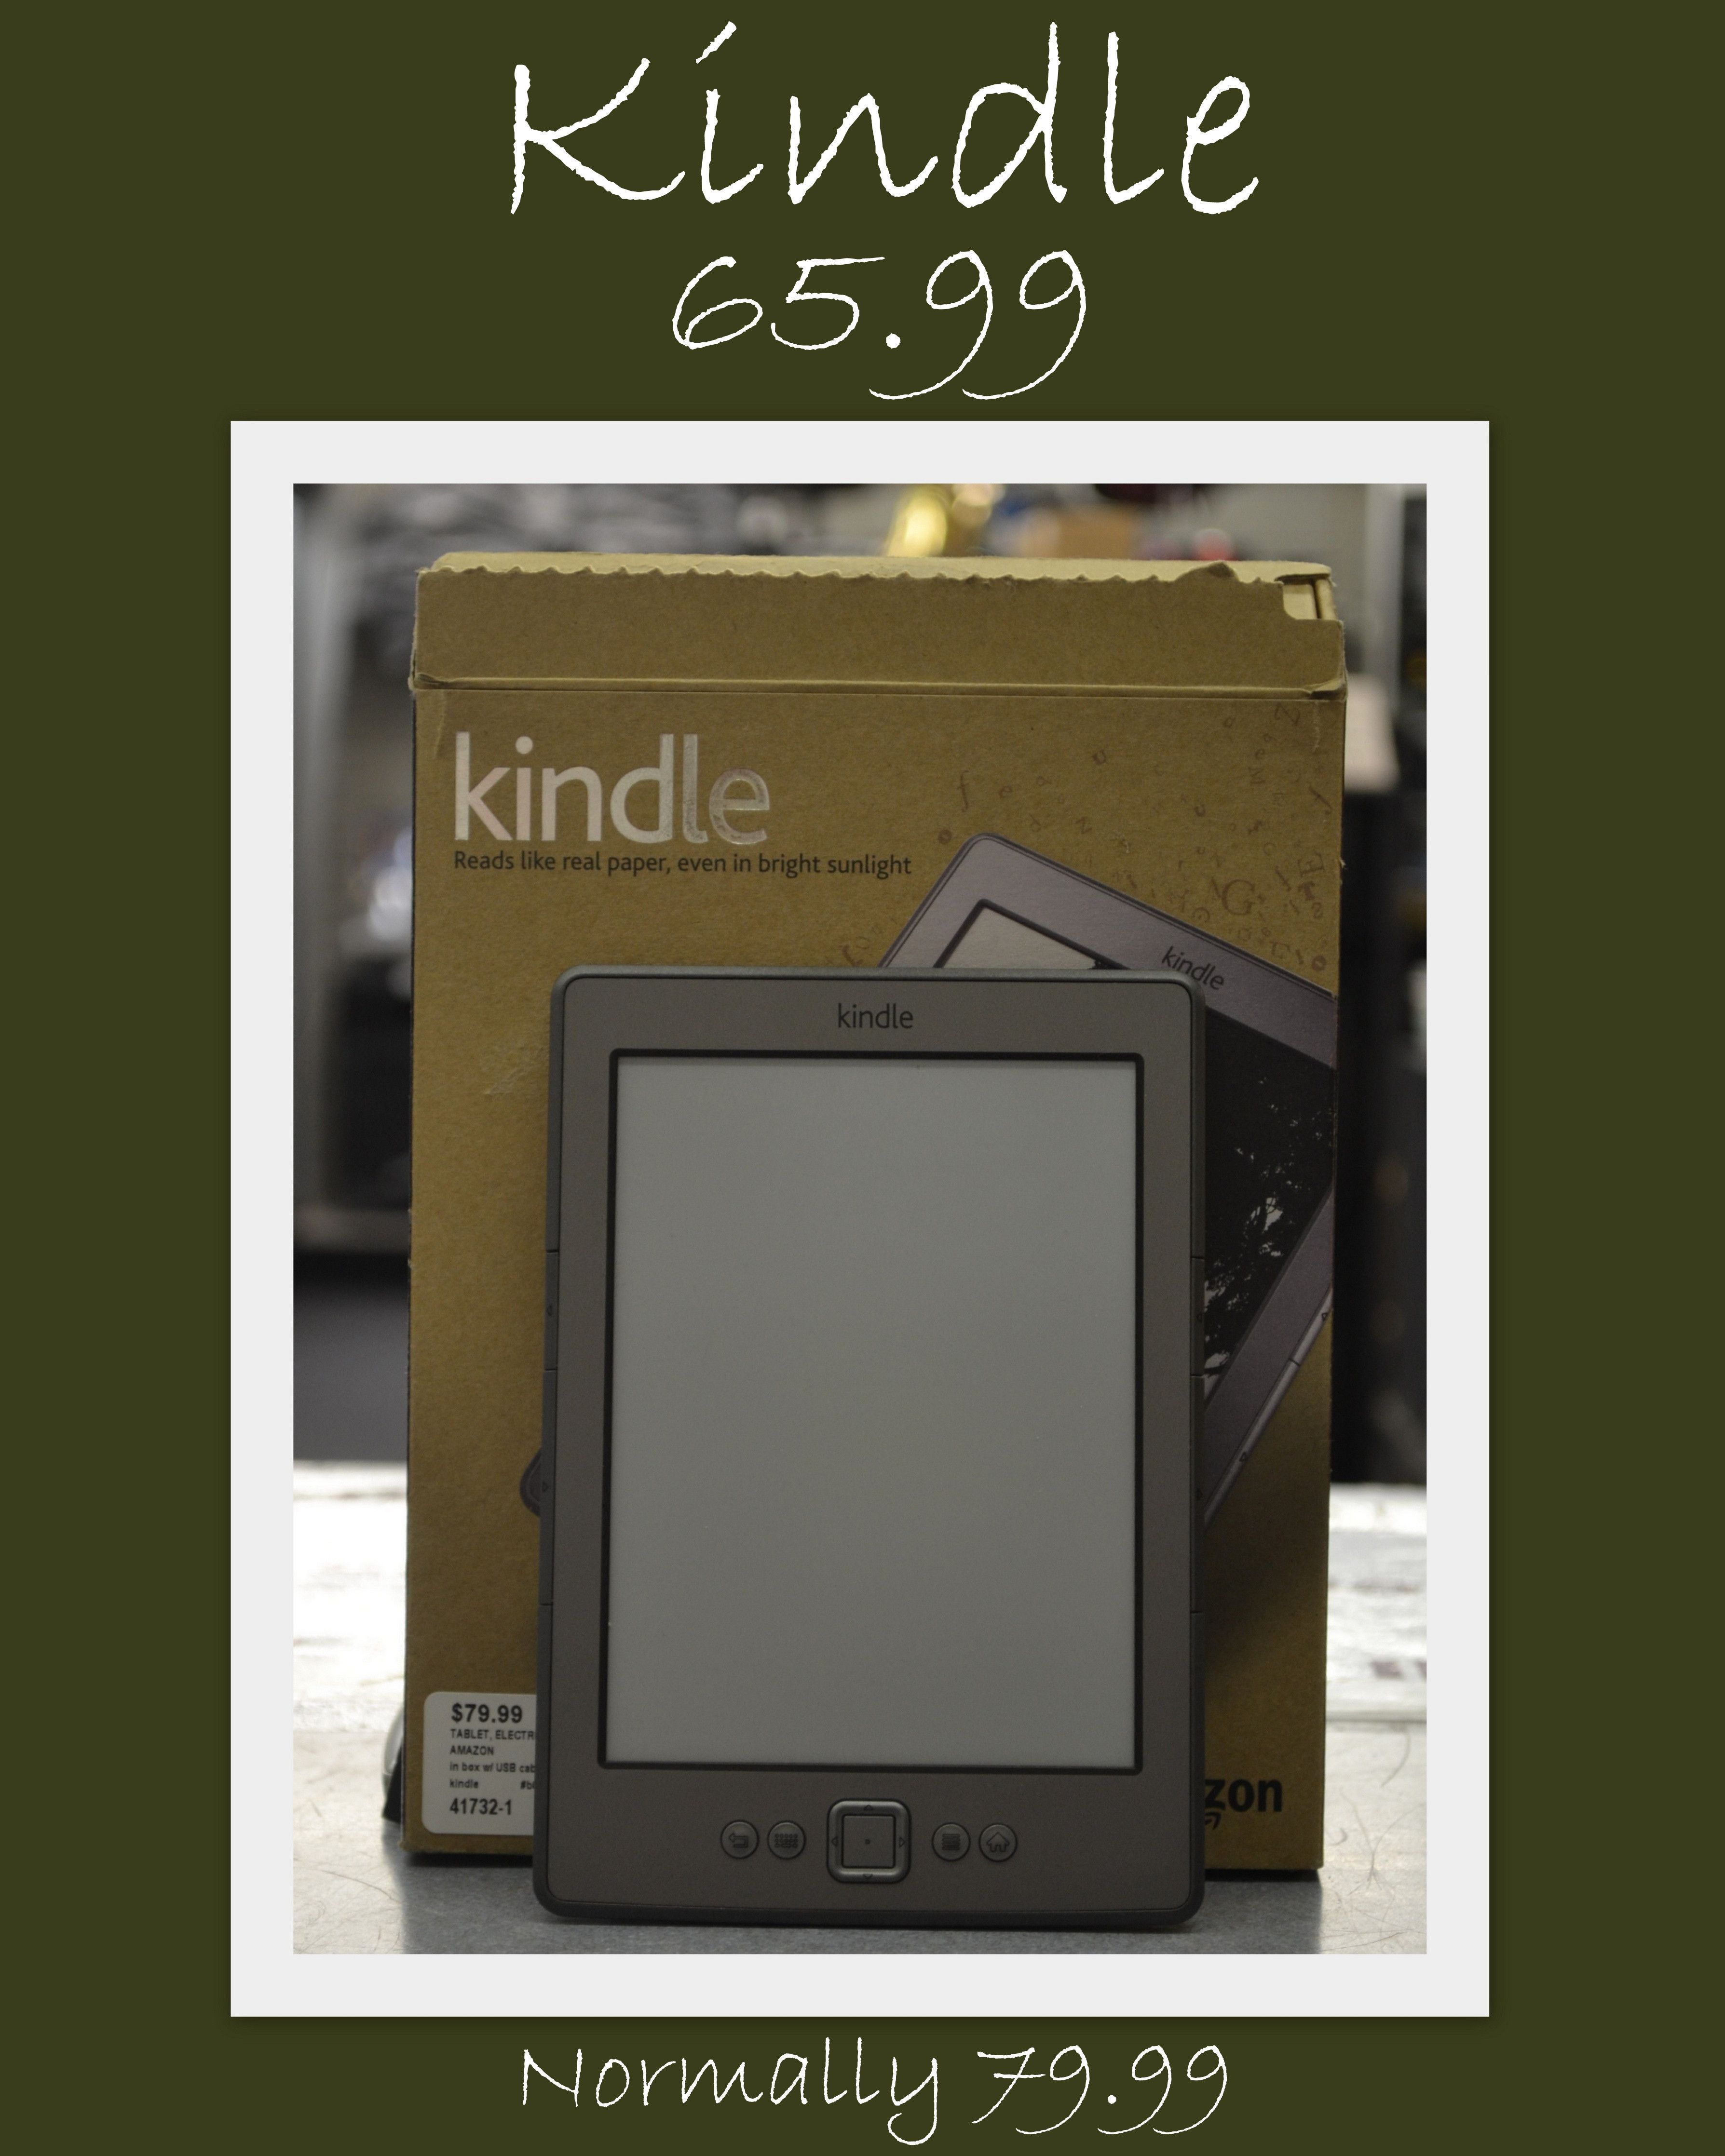 Amazon Kindle for  65.99. Normally 79.99. Please call 618-244-0291 for more info or for payment and shipping options